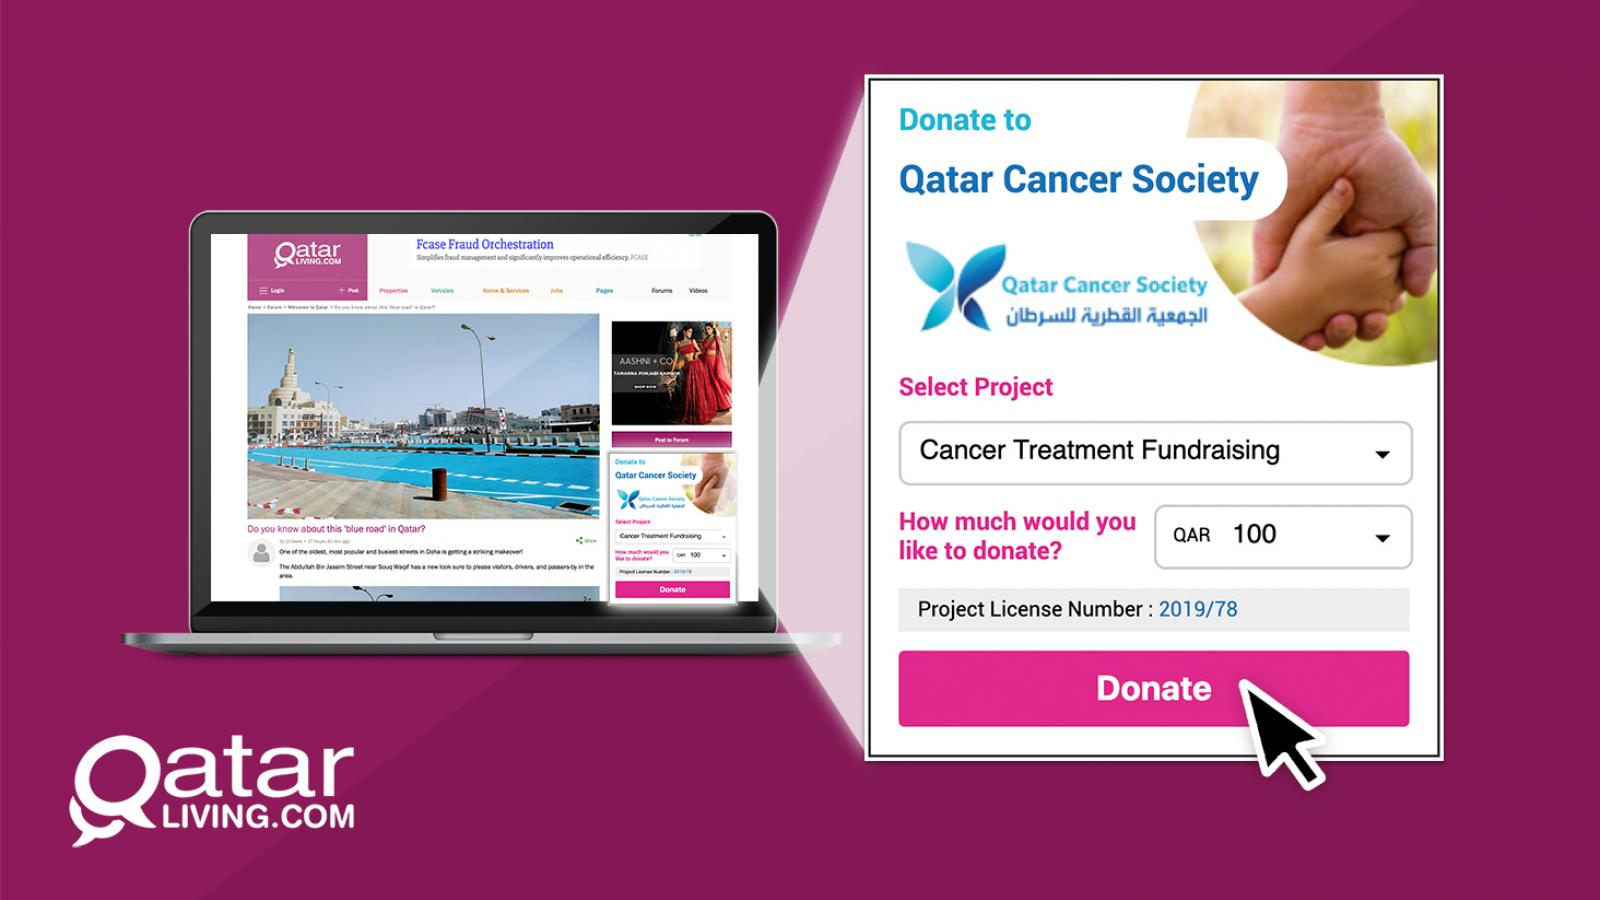 WATCH: Donate to Qatar Cancer Society through Qatar Living